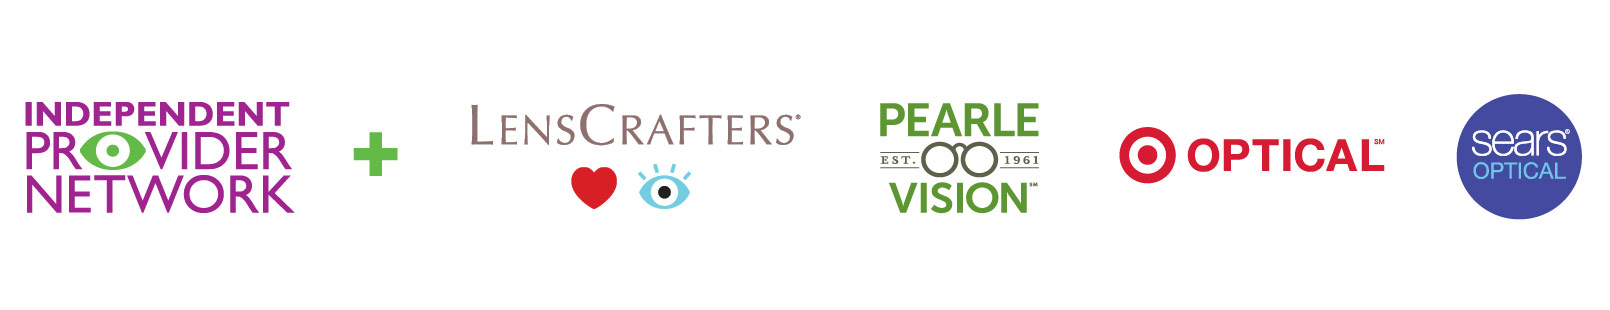 Independent Provider Network: LensCrafters, Pearle Vision, Target Optical, Sears Optical